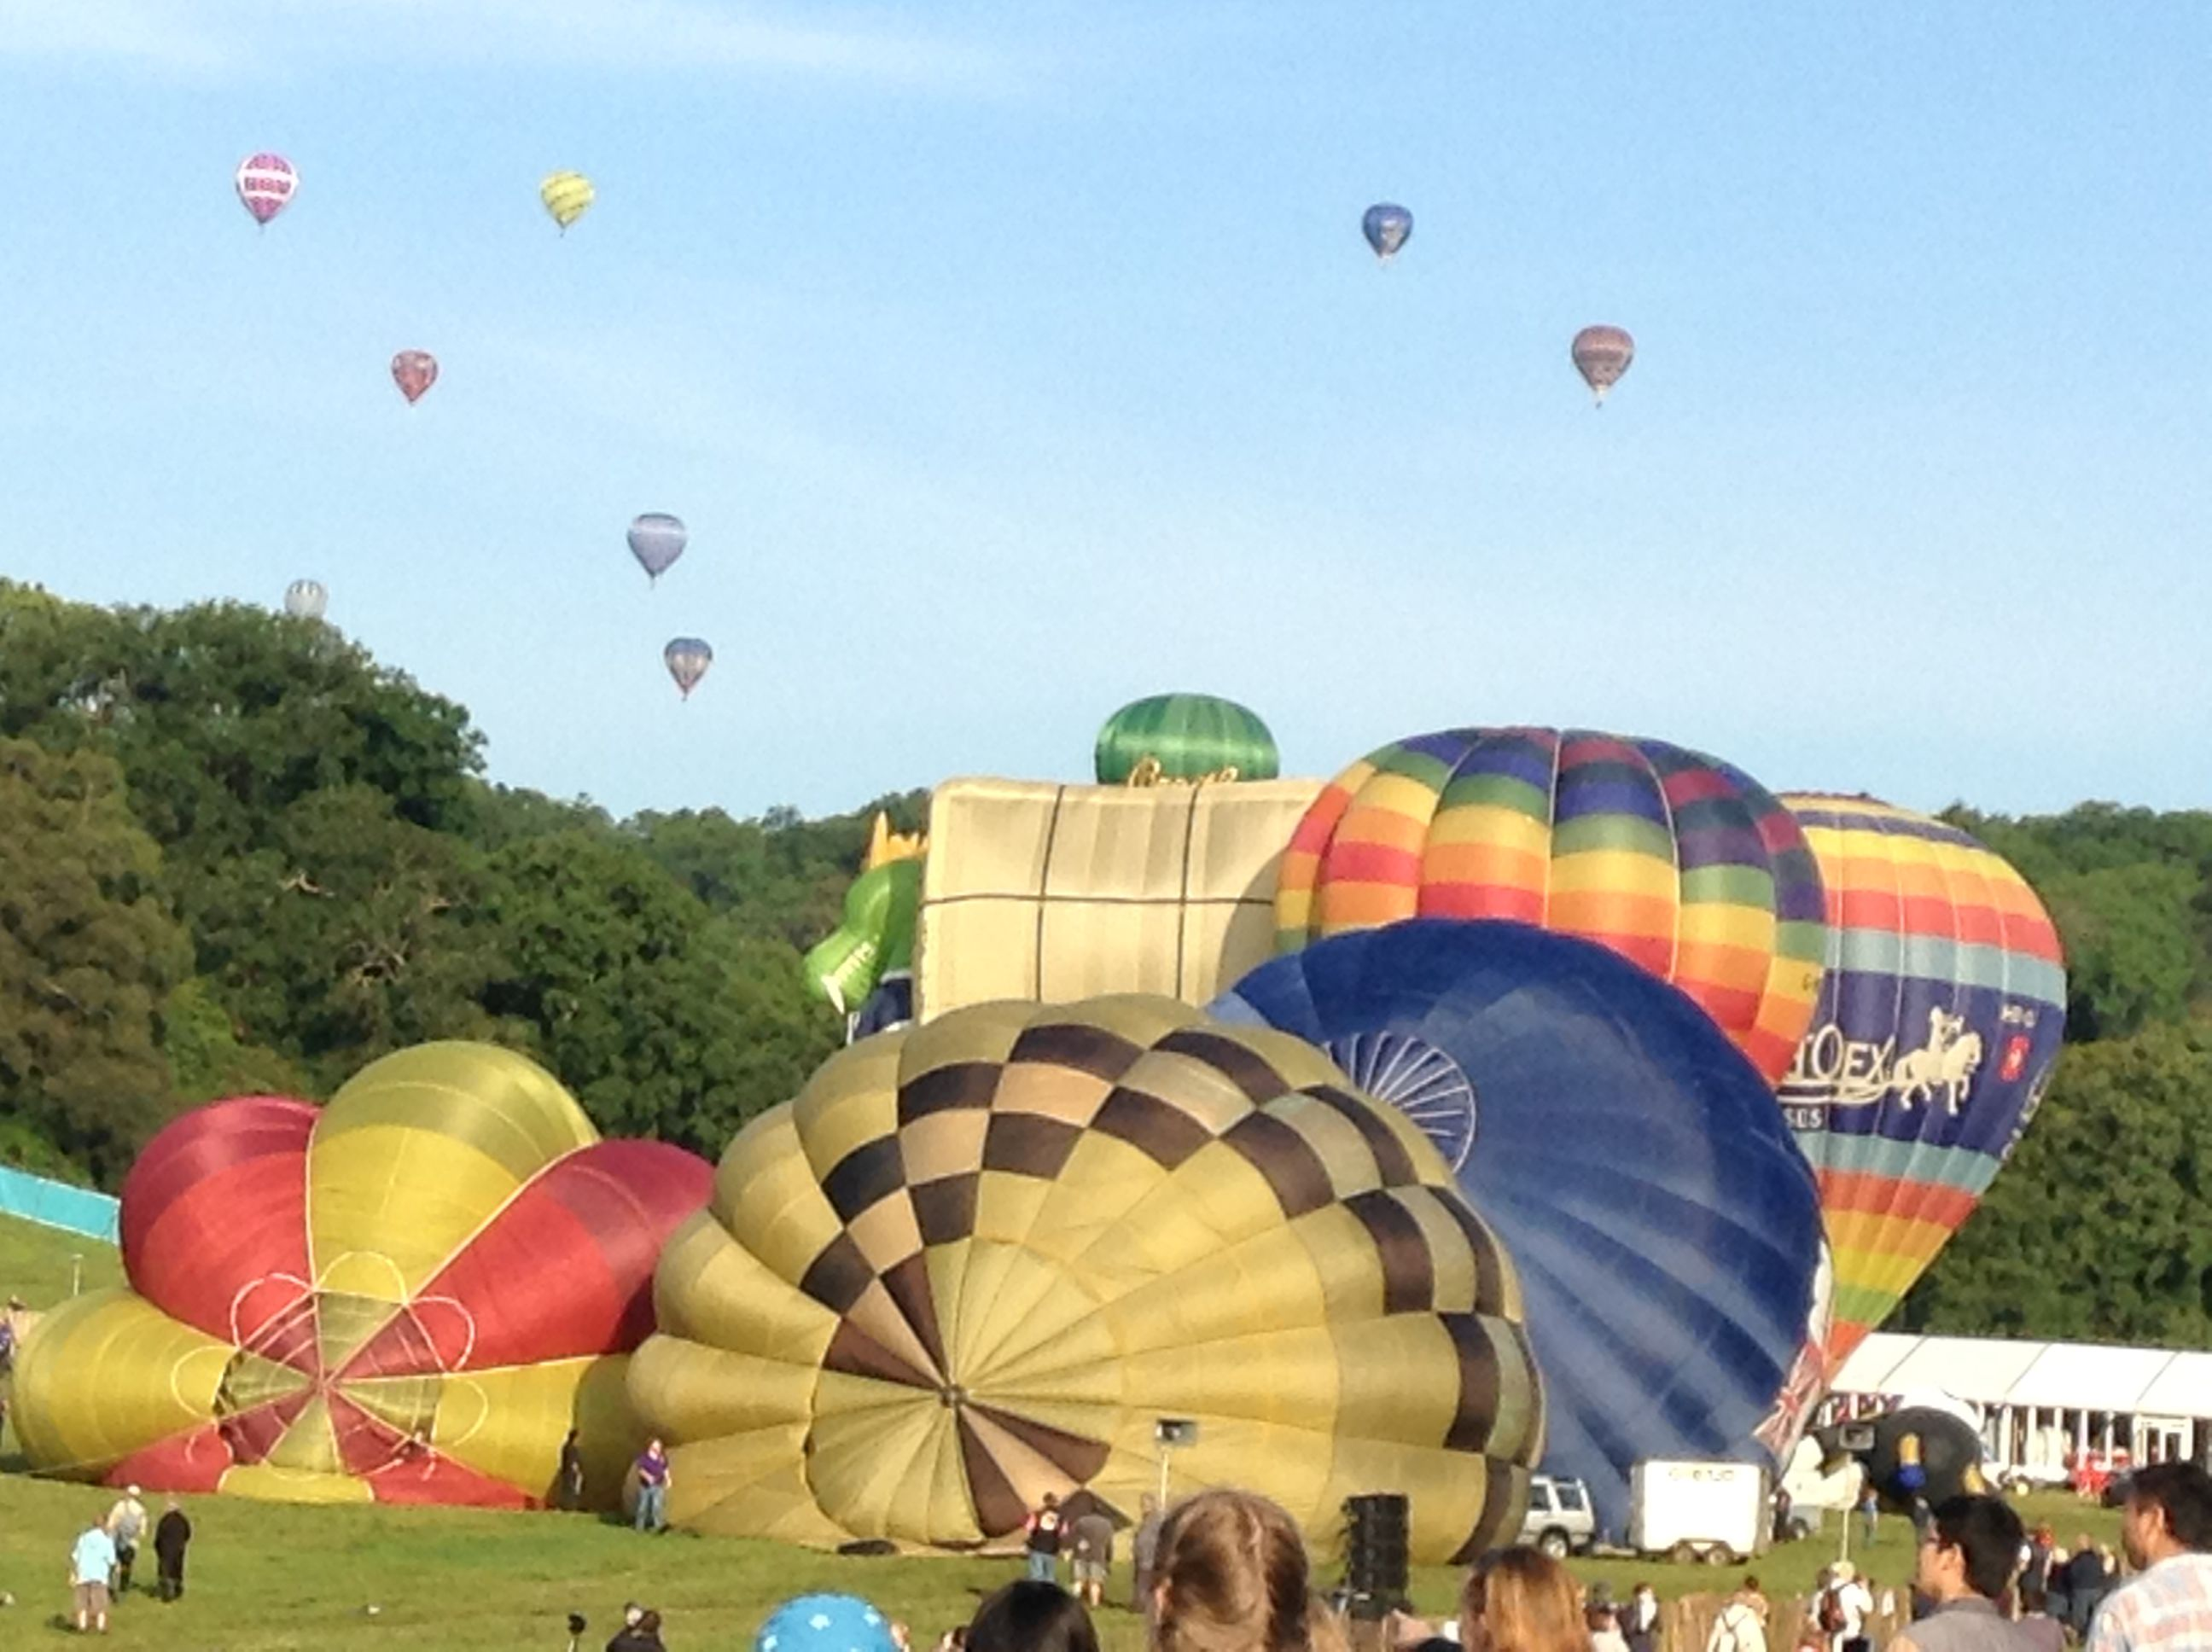 Hot air balloons inflating Bristol balloon festival August